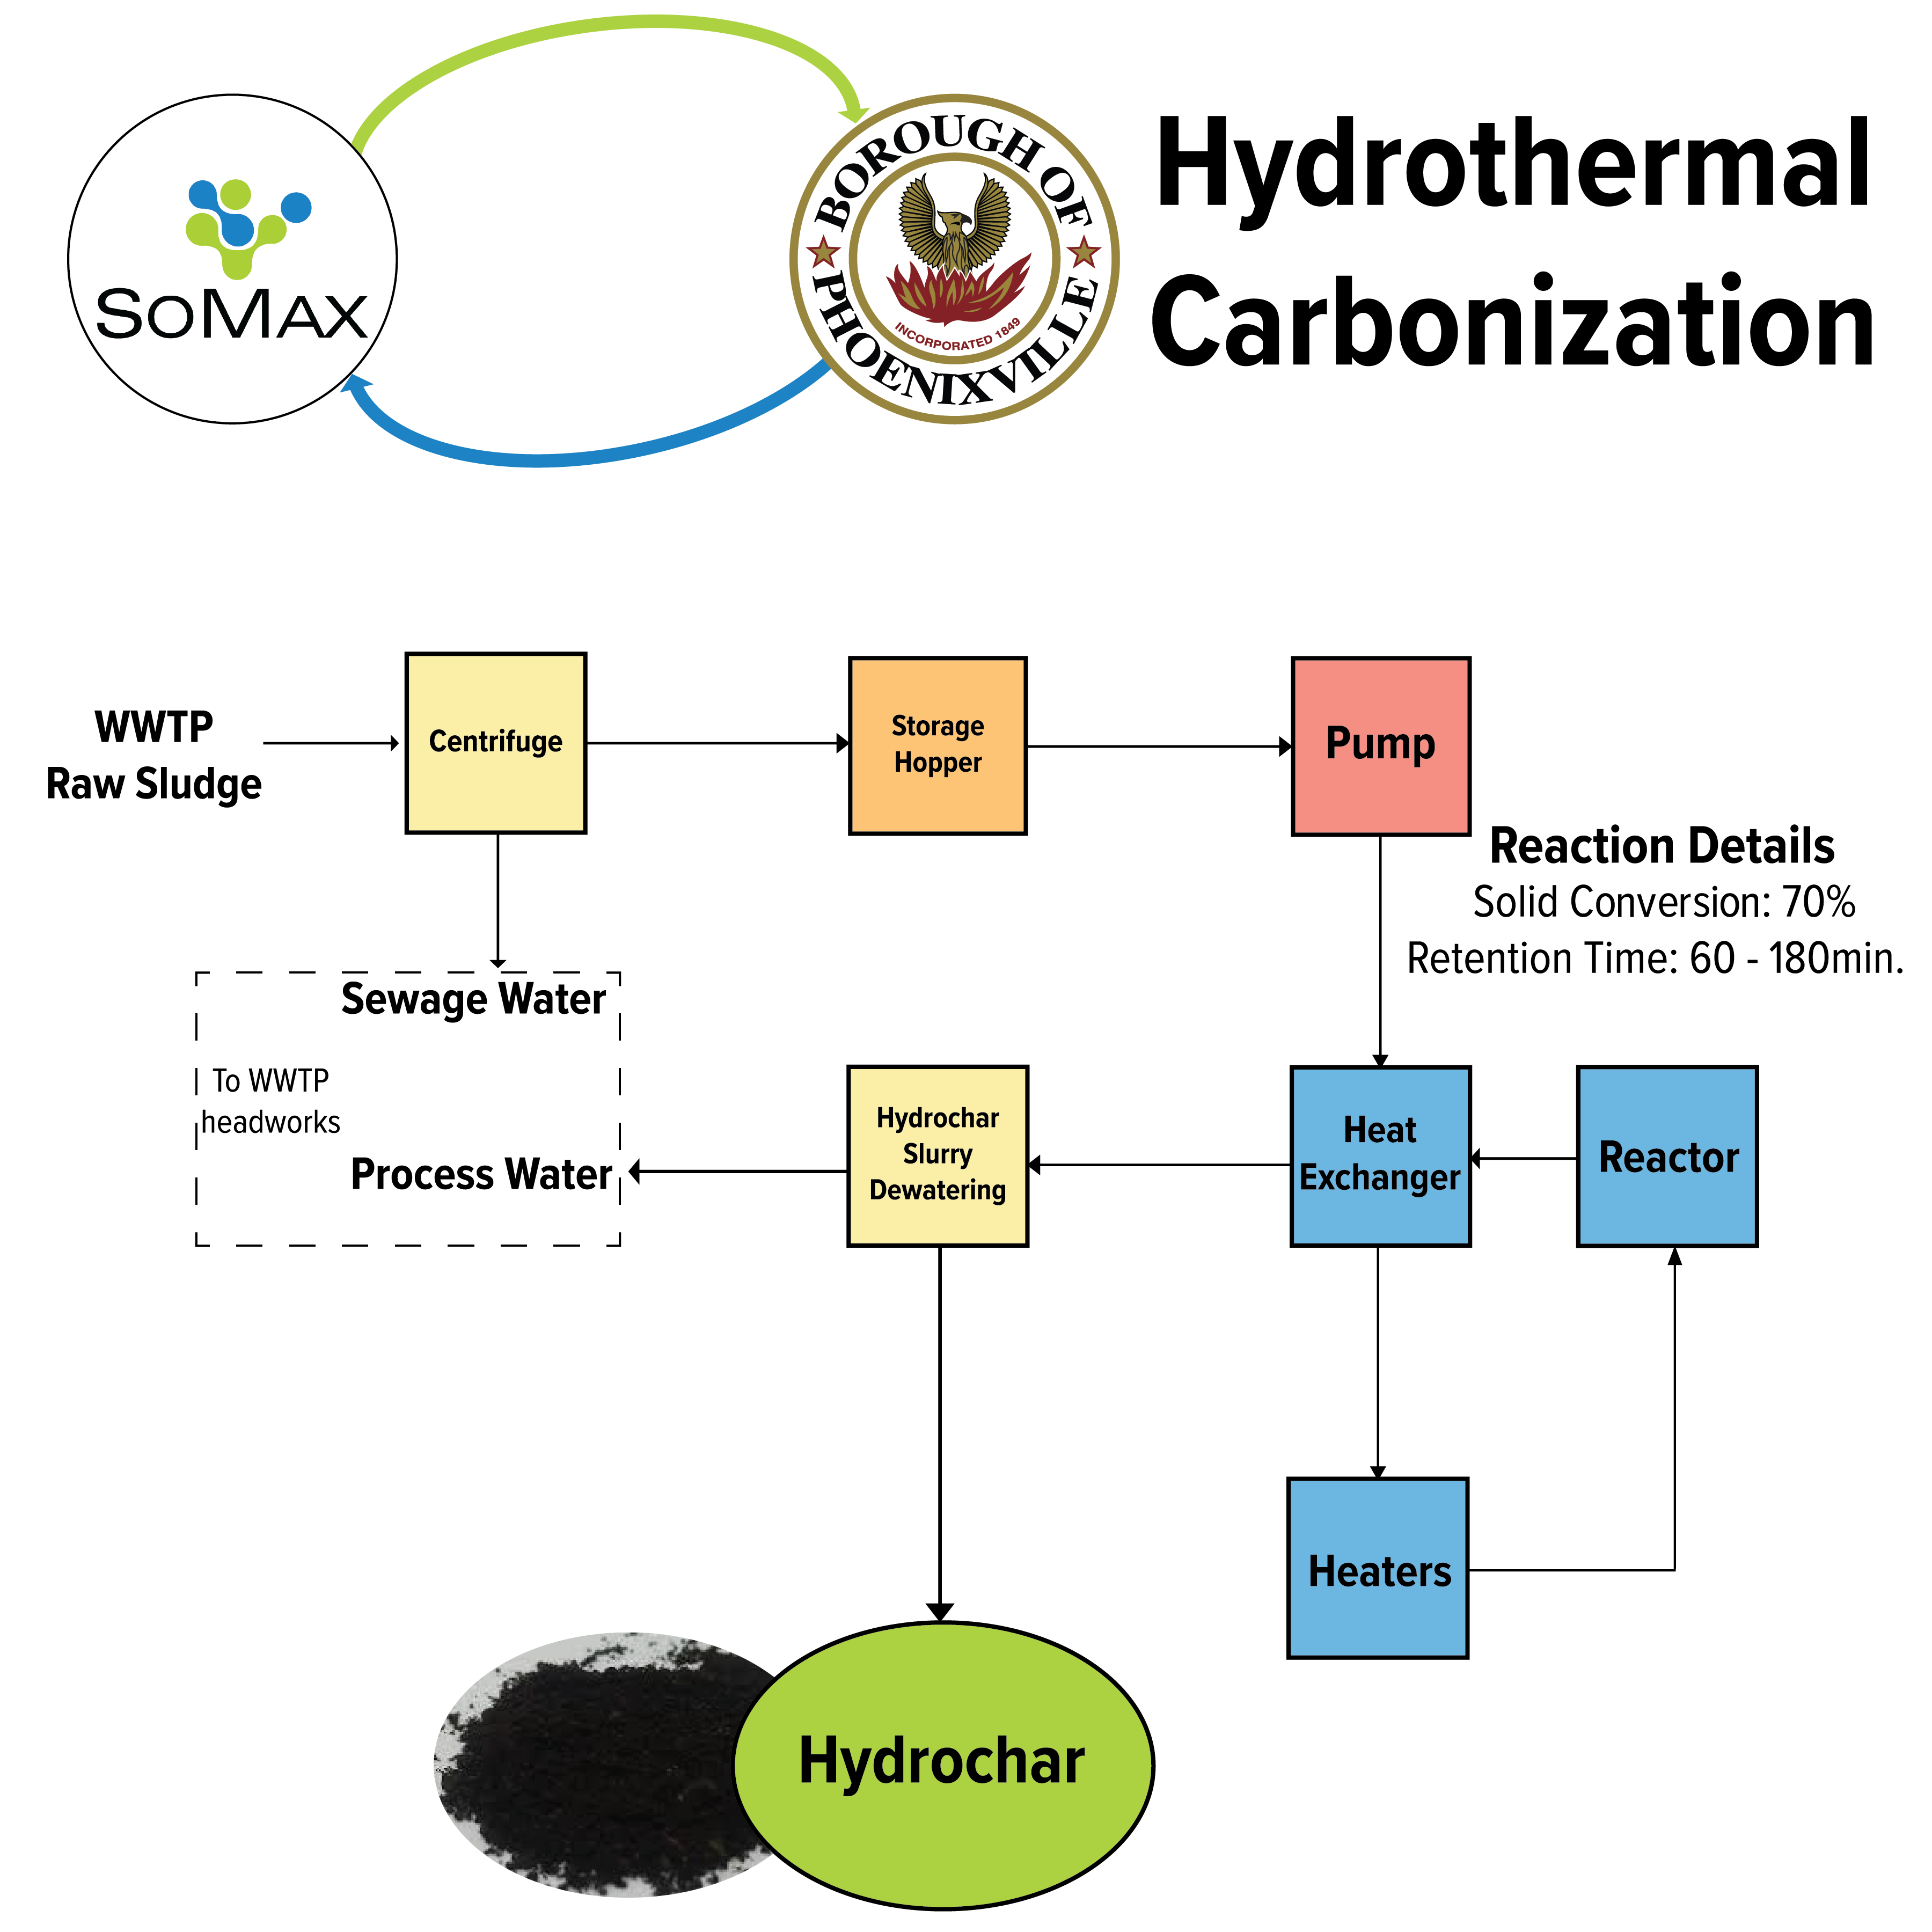 SOMAX Hydrothermal Carbonization Process